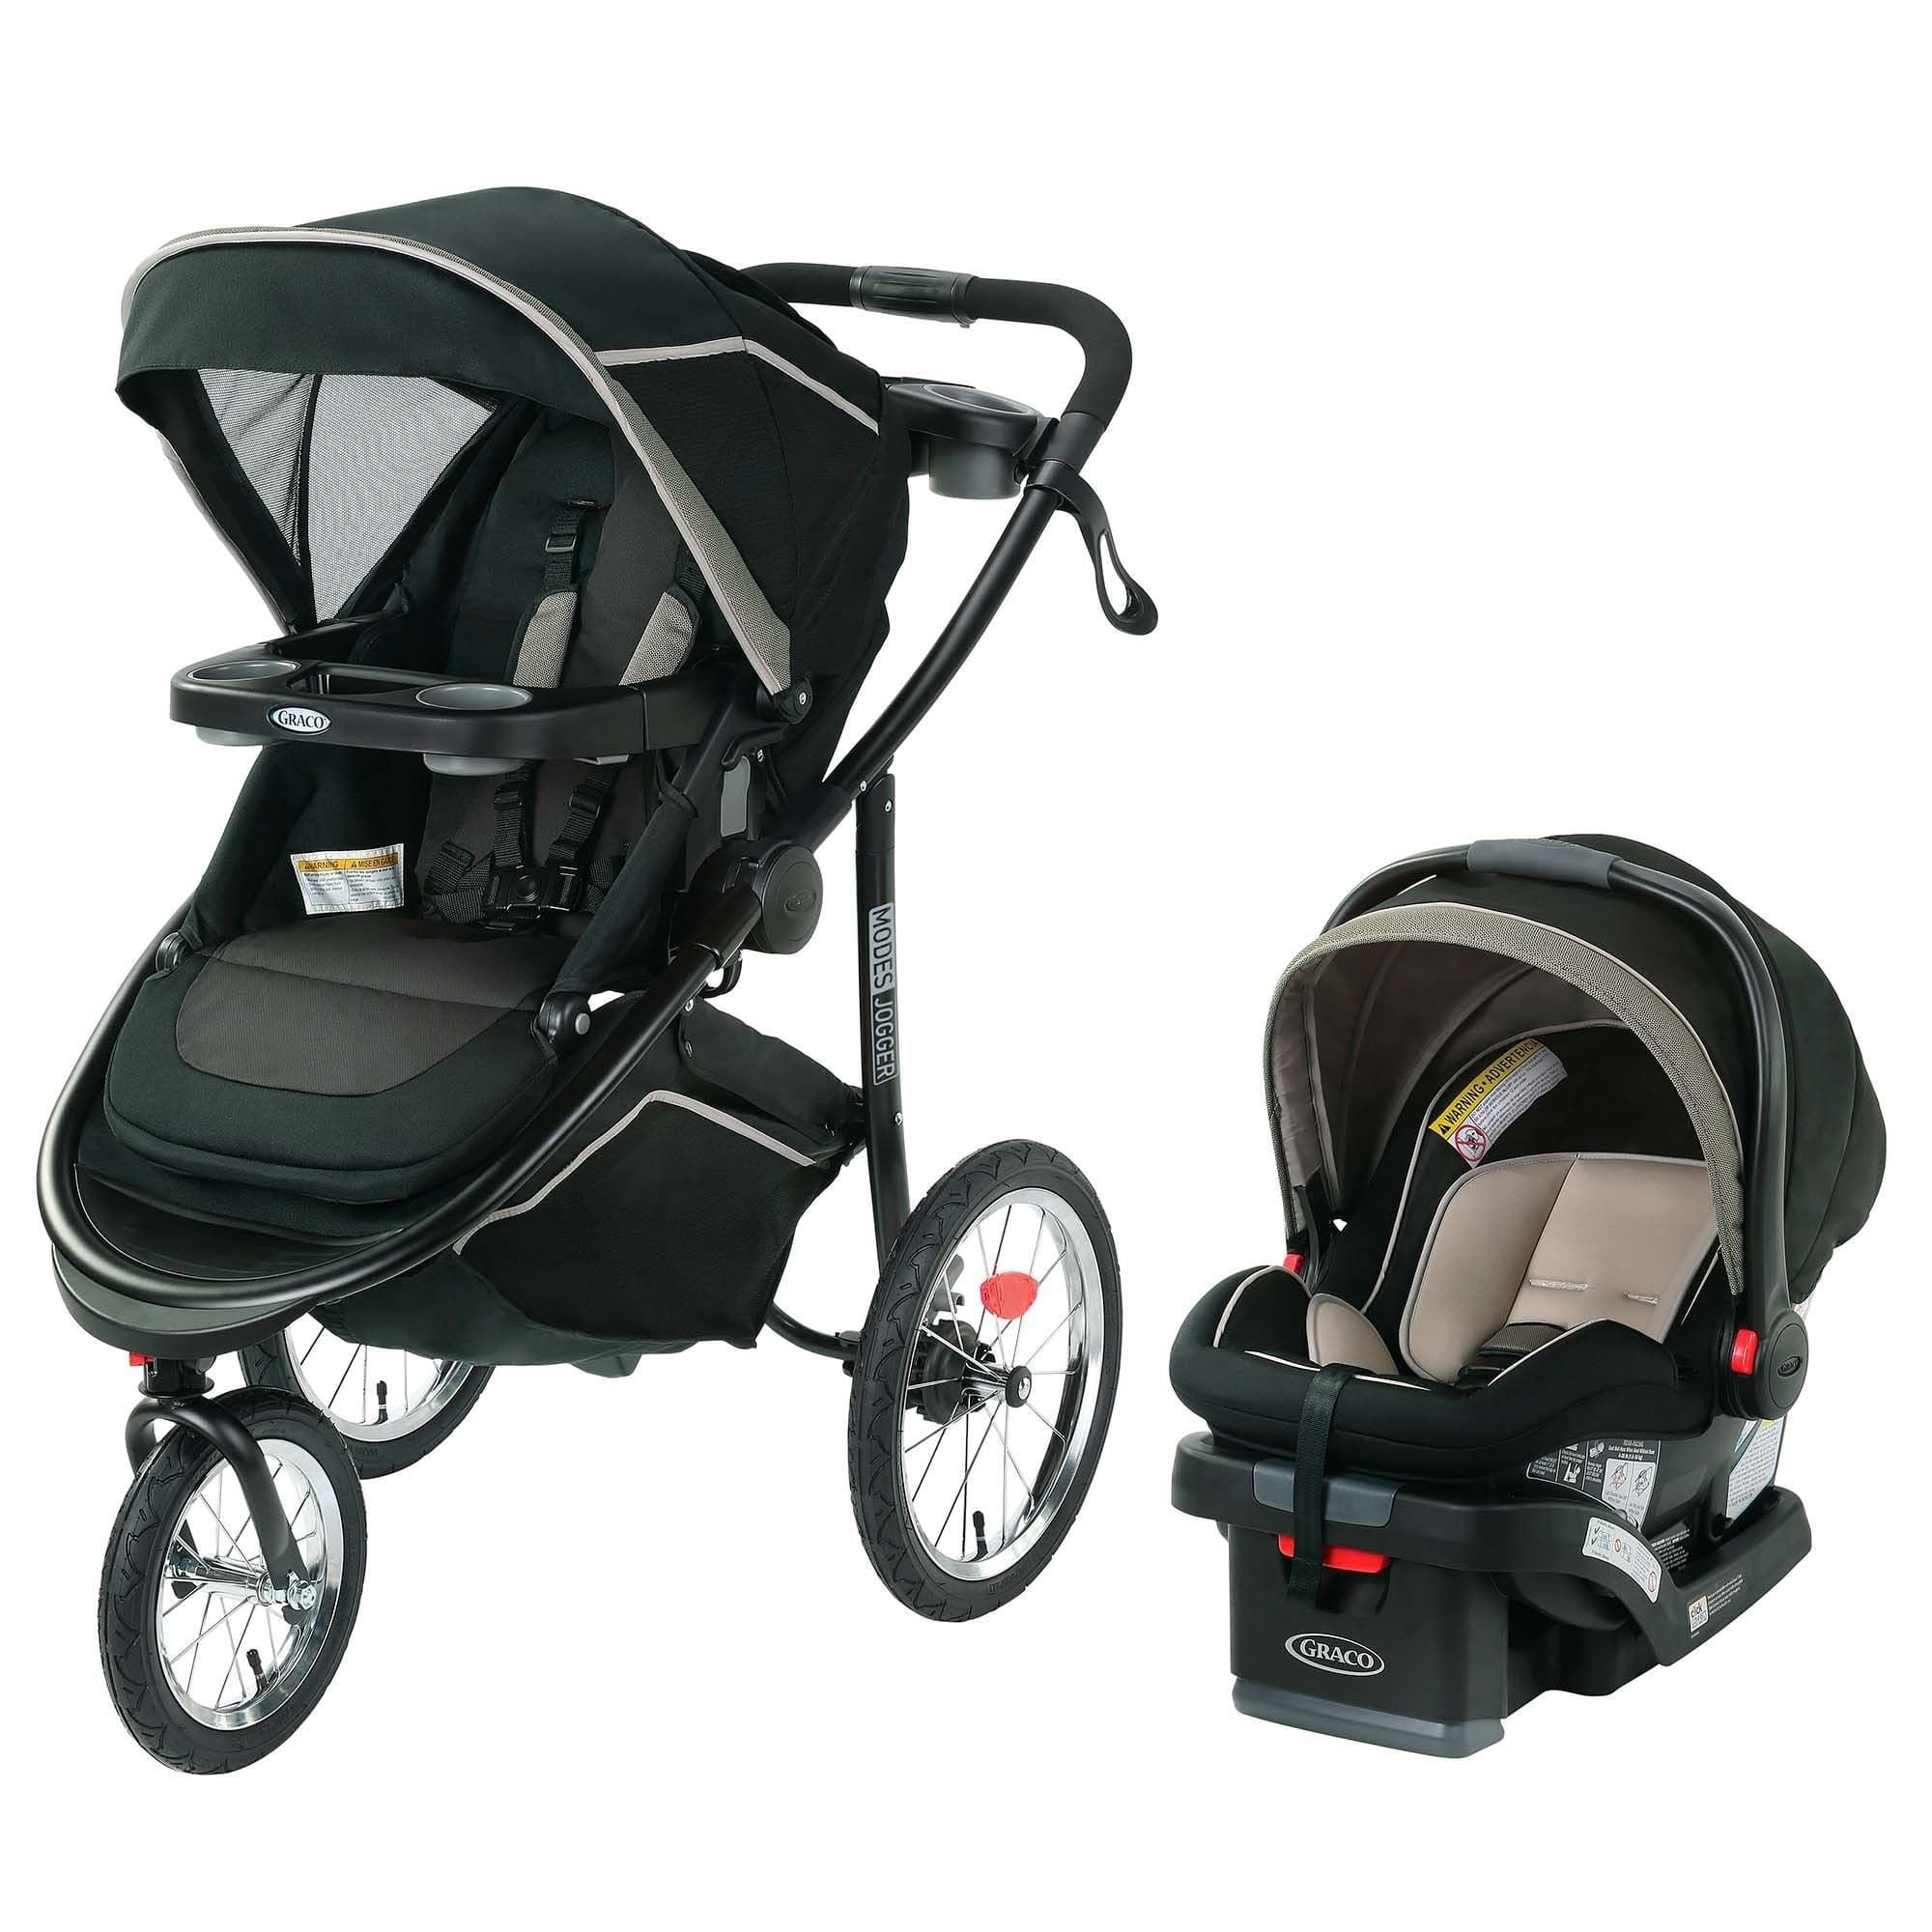 Graco Modes Jogger Travel System, Haven, Green Travel